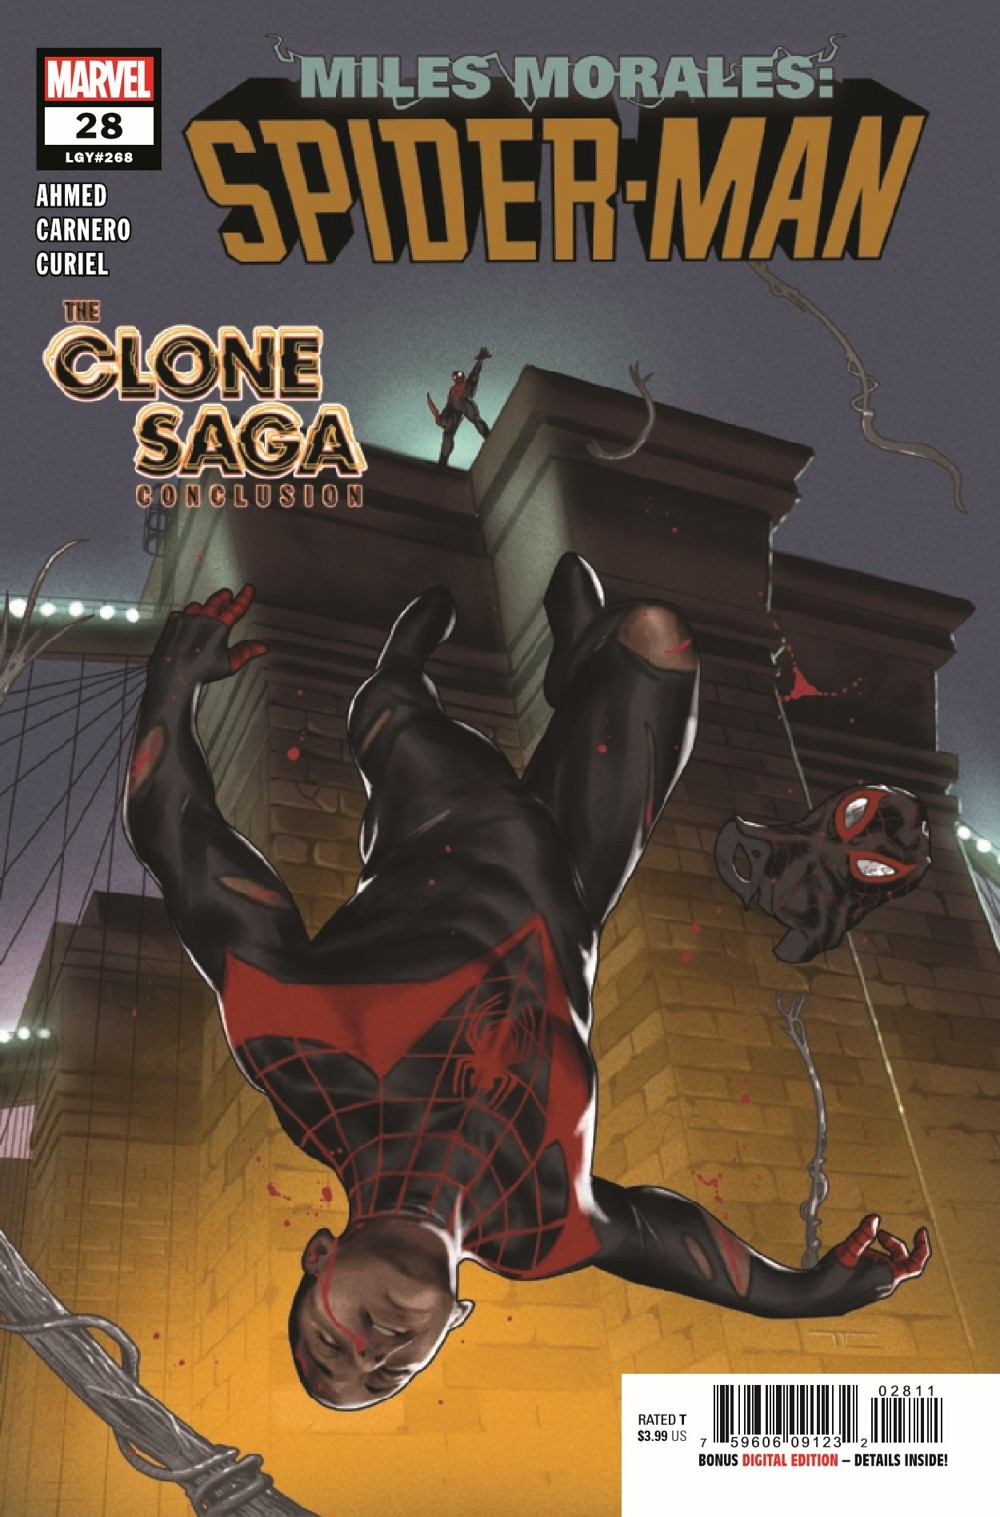 MMSM2018028_Preview-1 ComicList Previews: MILES MORALES SPIDER-MAN #28